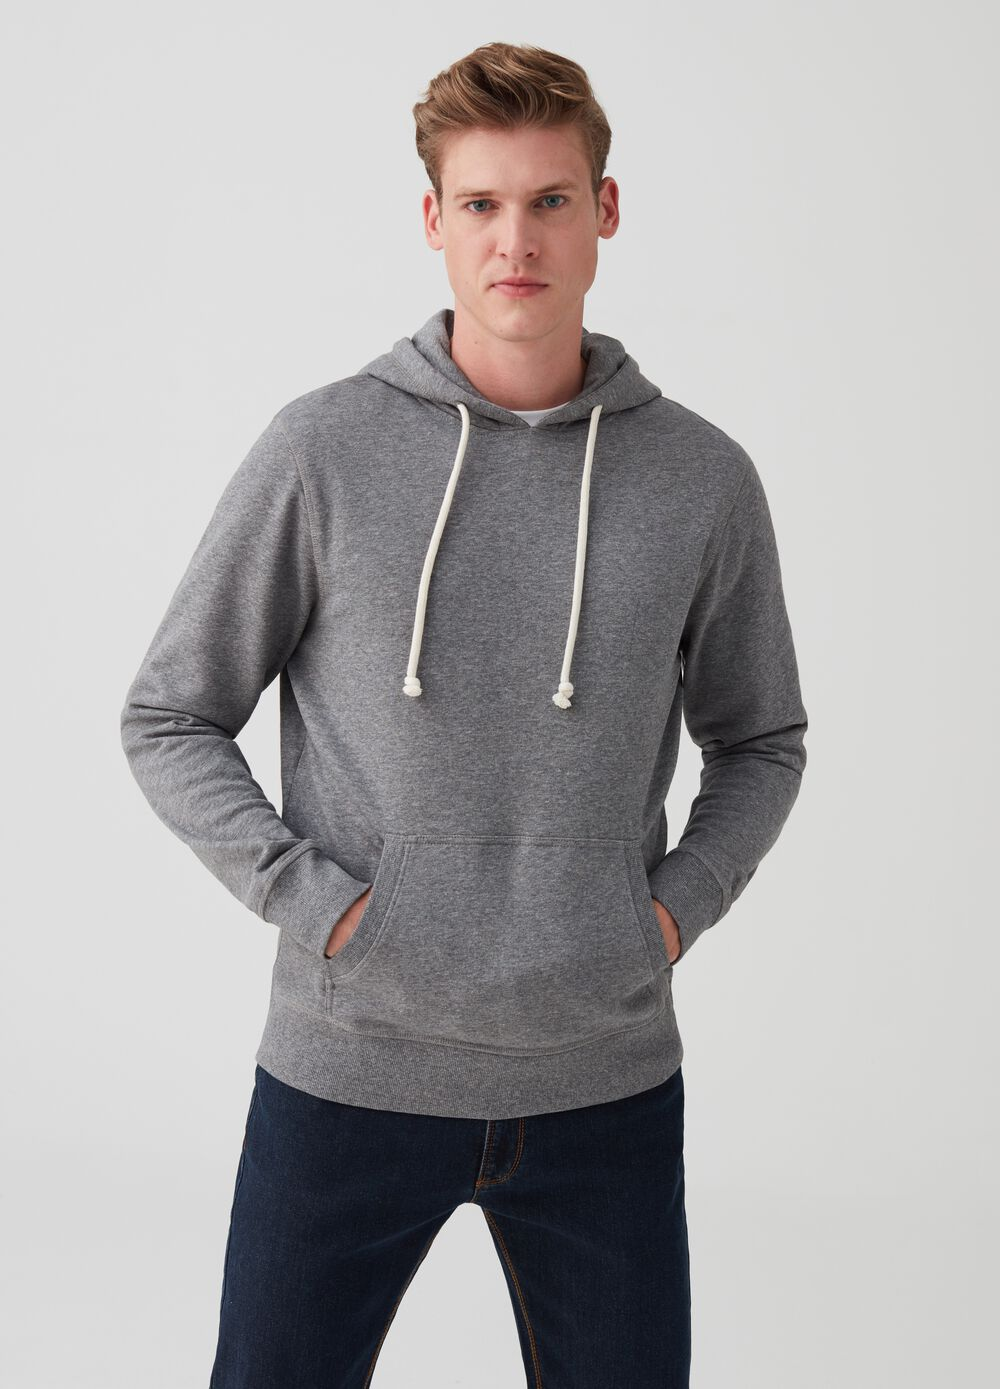 Mélange sweatshirt with pouch pocket